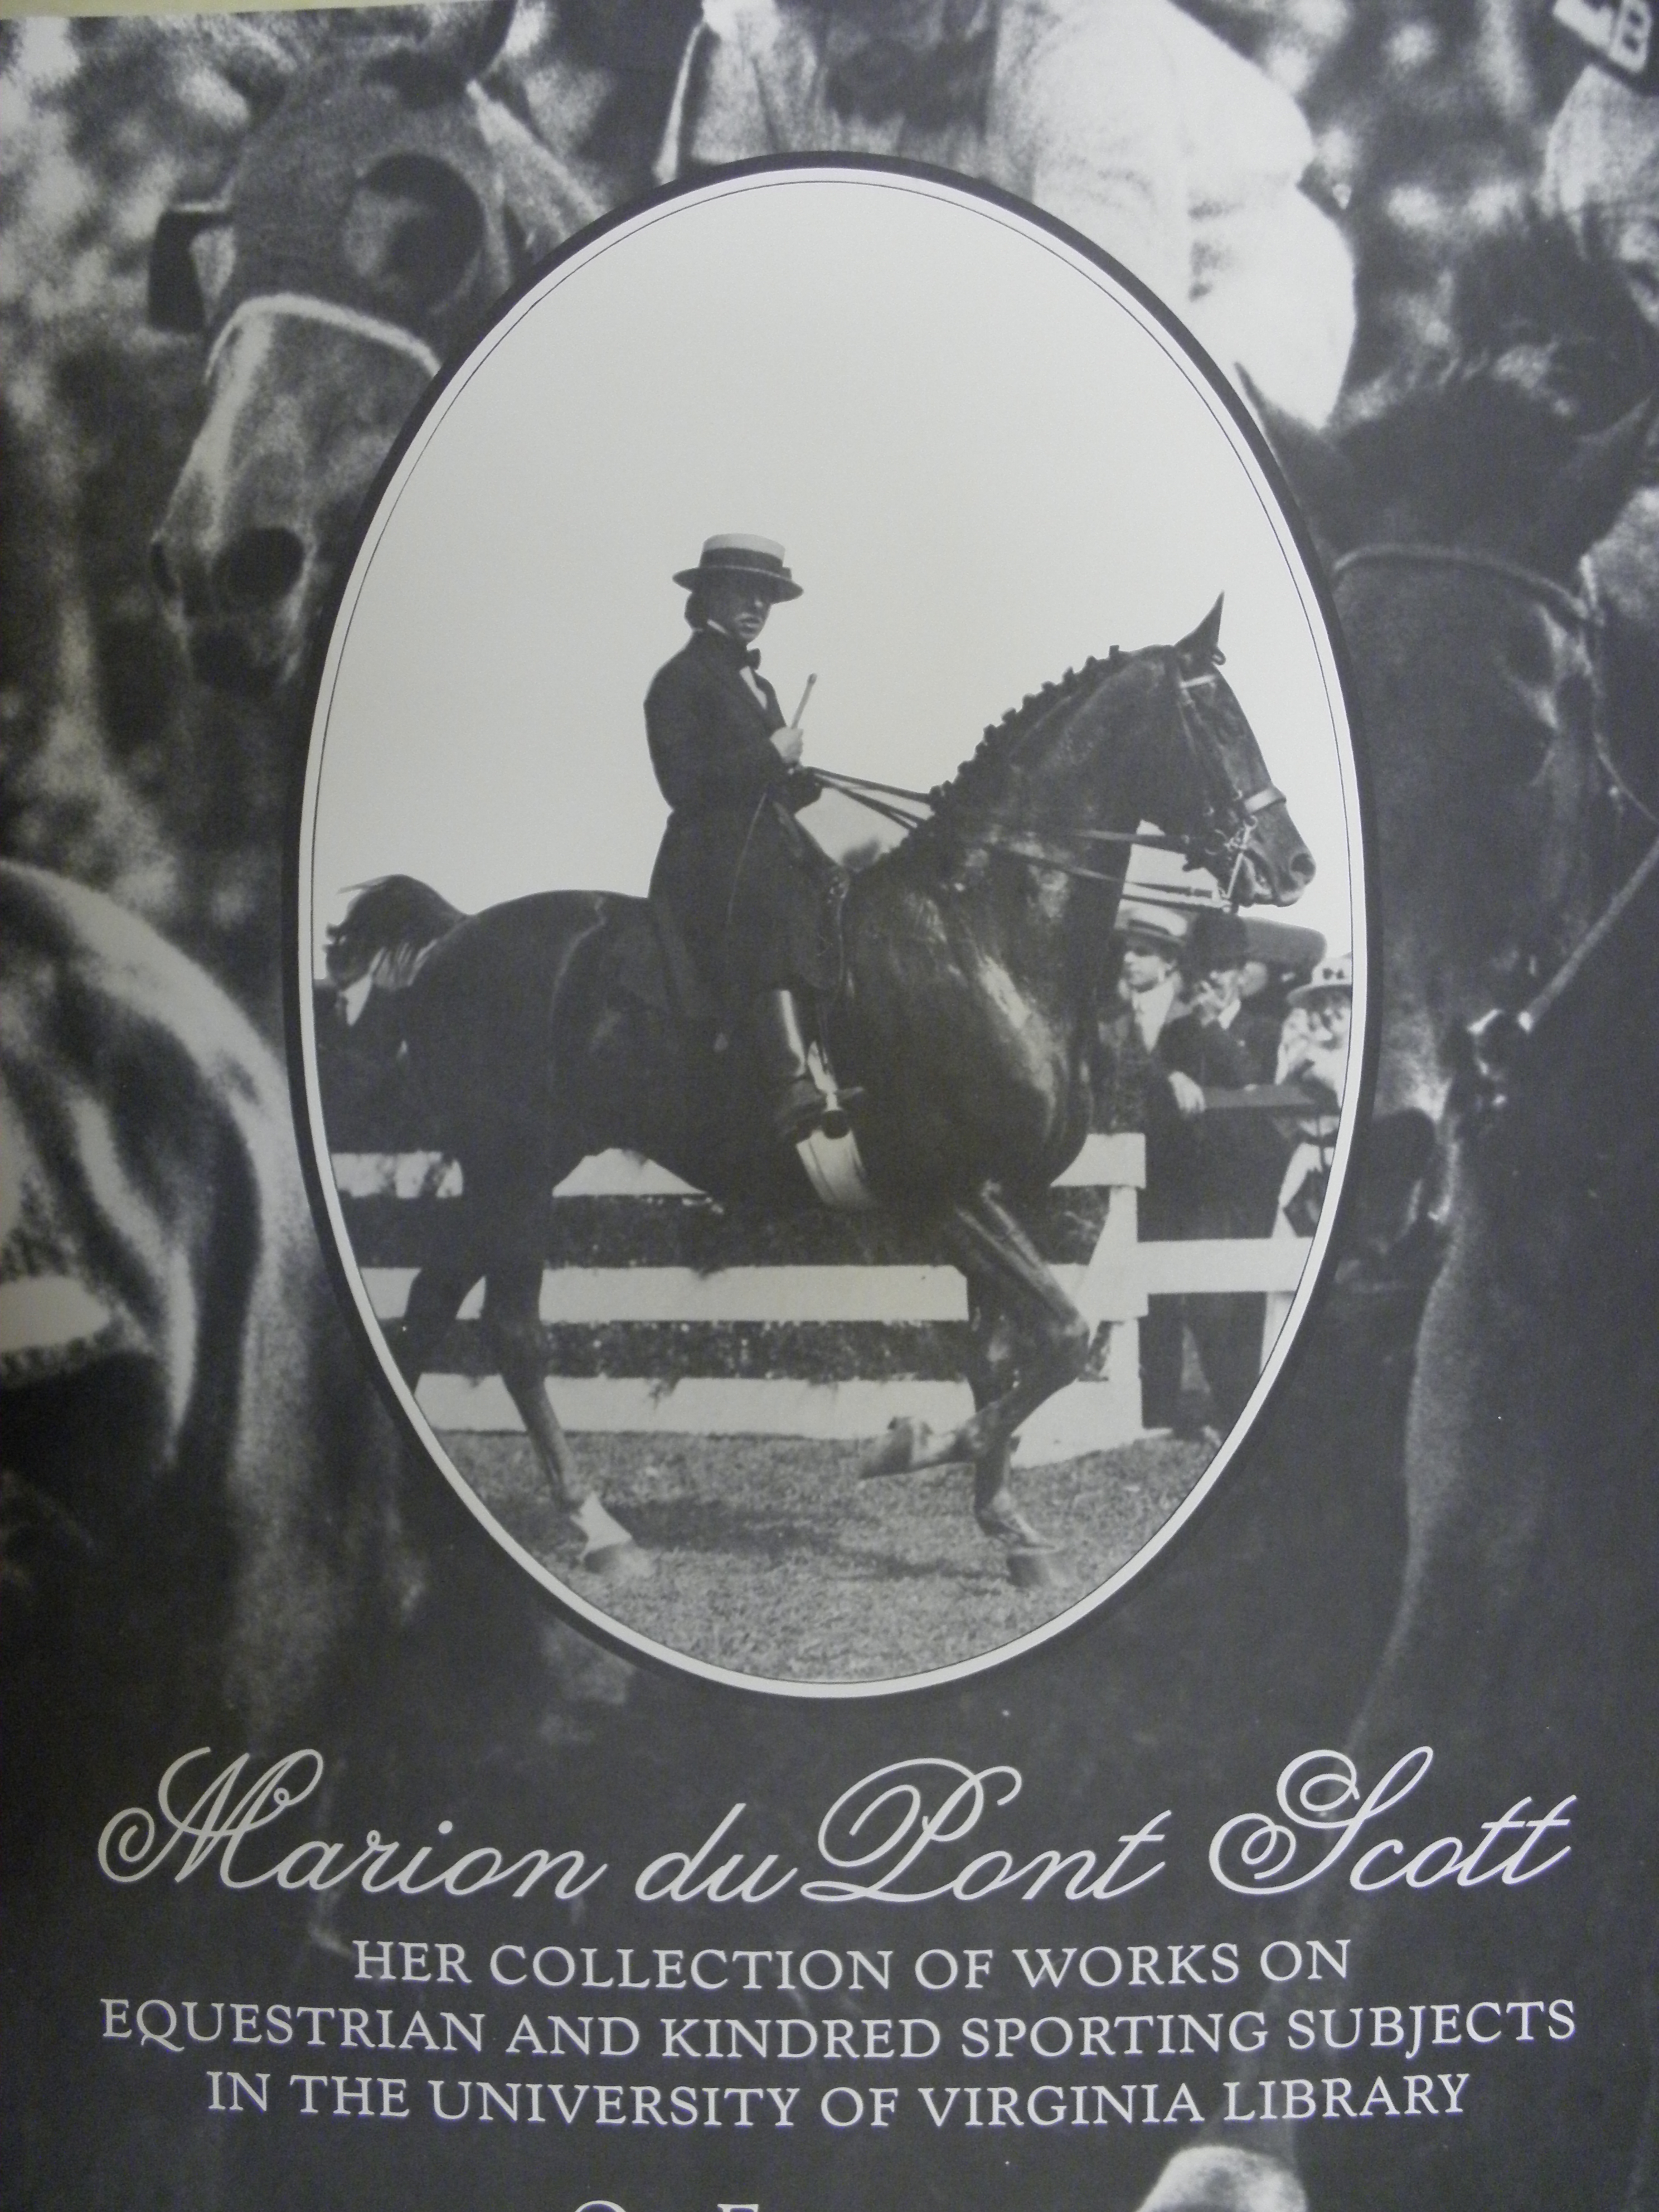 Marion duPont Scott: Her Collection of Works on Equestrian and Kindred Sporting Subjects in the University of Virginia Library: on exhibition 22 January-10 August 1990, Department of Special Collections. Background photograph by Raymond Woolfe. (Poster 1990. M27. Marion du Pont Scott Collection. Photograph by Donna Stapley)         1990 .M27